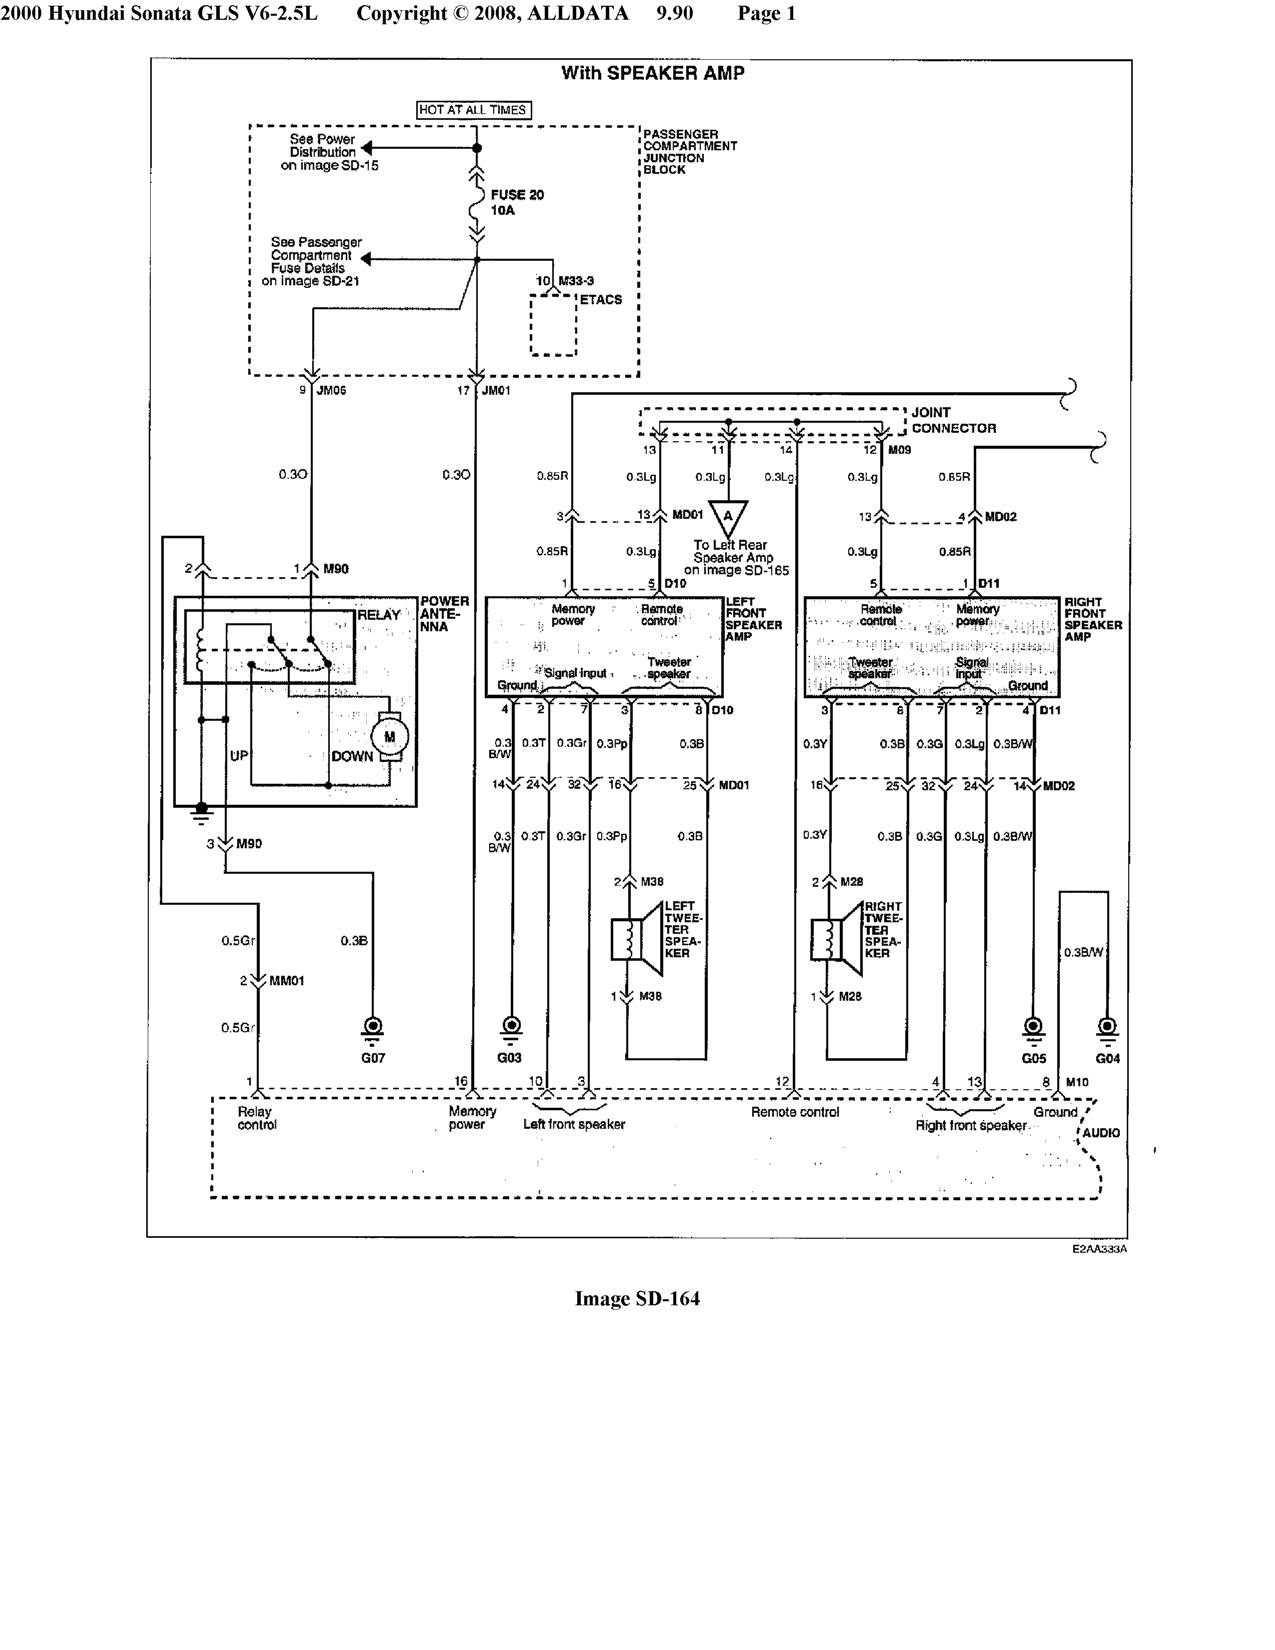 1999 hyundai tiburon engine diagram illustration of wiring diagram \u2022 02 hyundai elantra stereo wire diagram 1999 hyundai tiburon stereo wiring diagram wire center u2022 rh 208 167 249 254 2003 hyundai tiburon engine diagram 2001 hyundai tiburon engine diagram